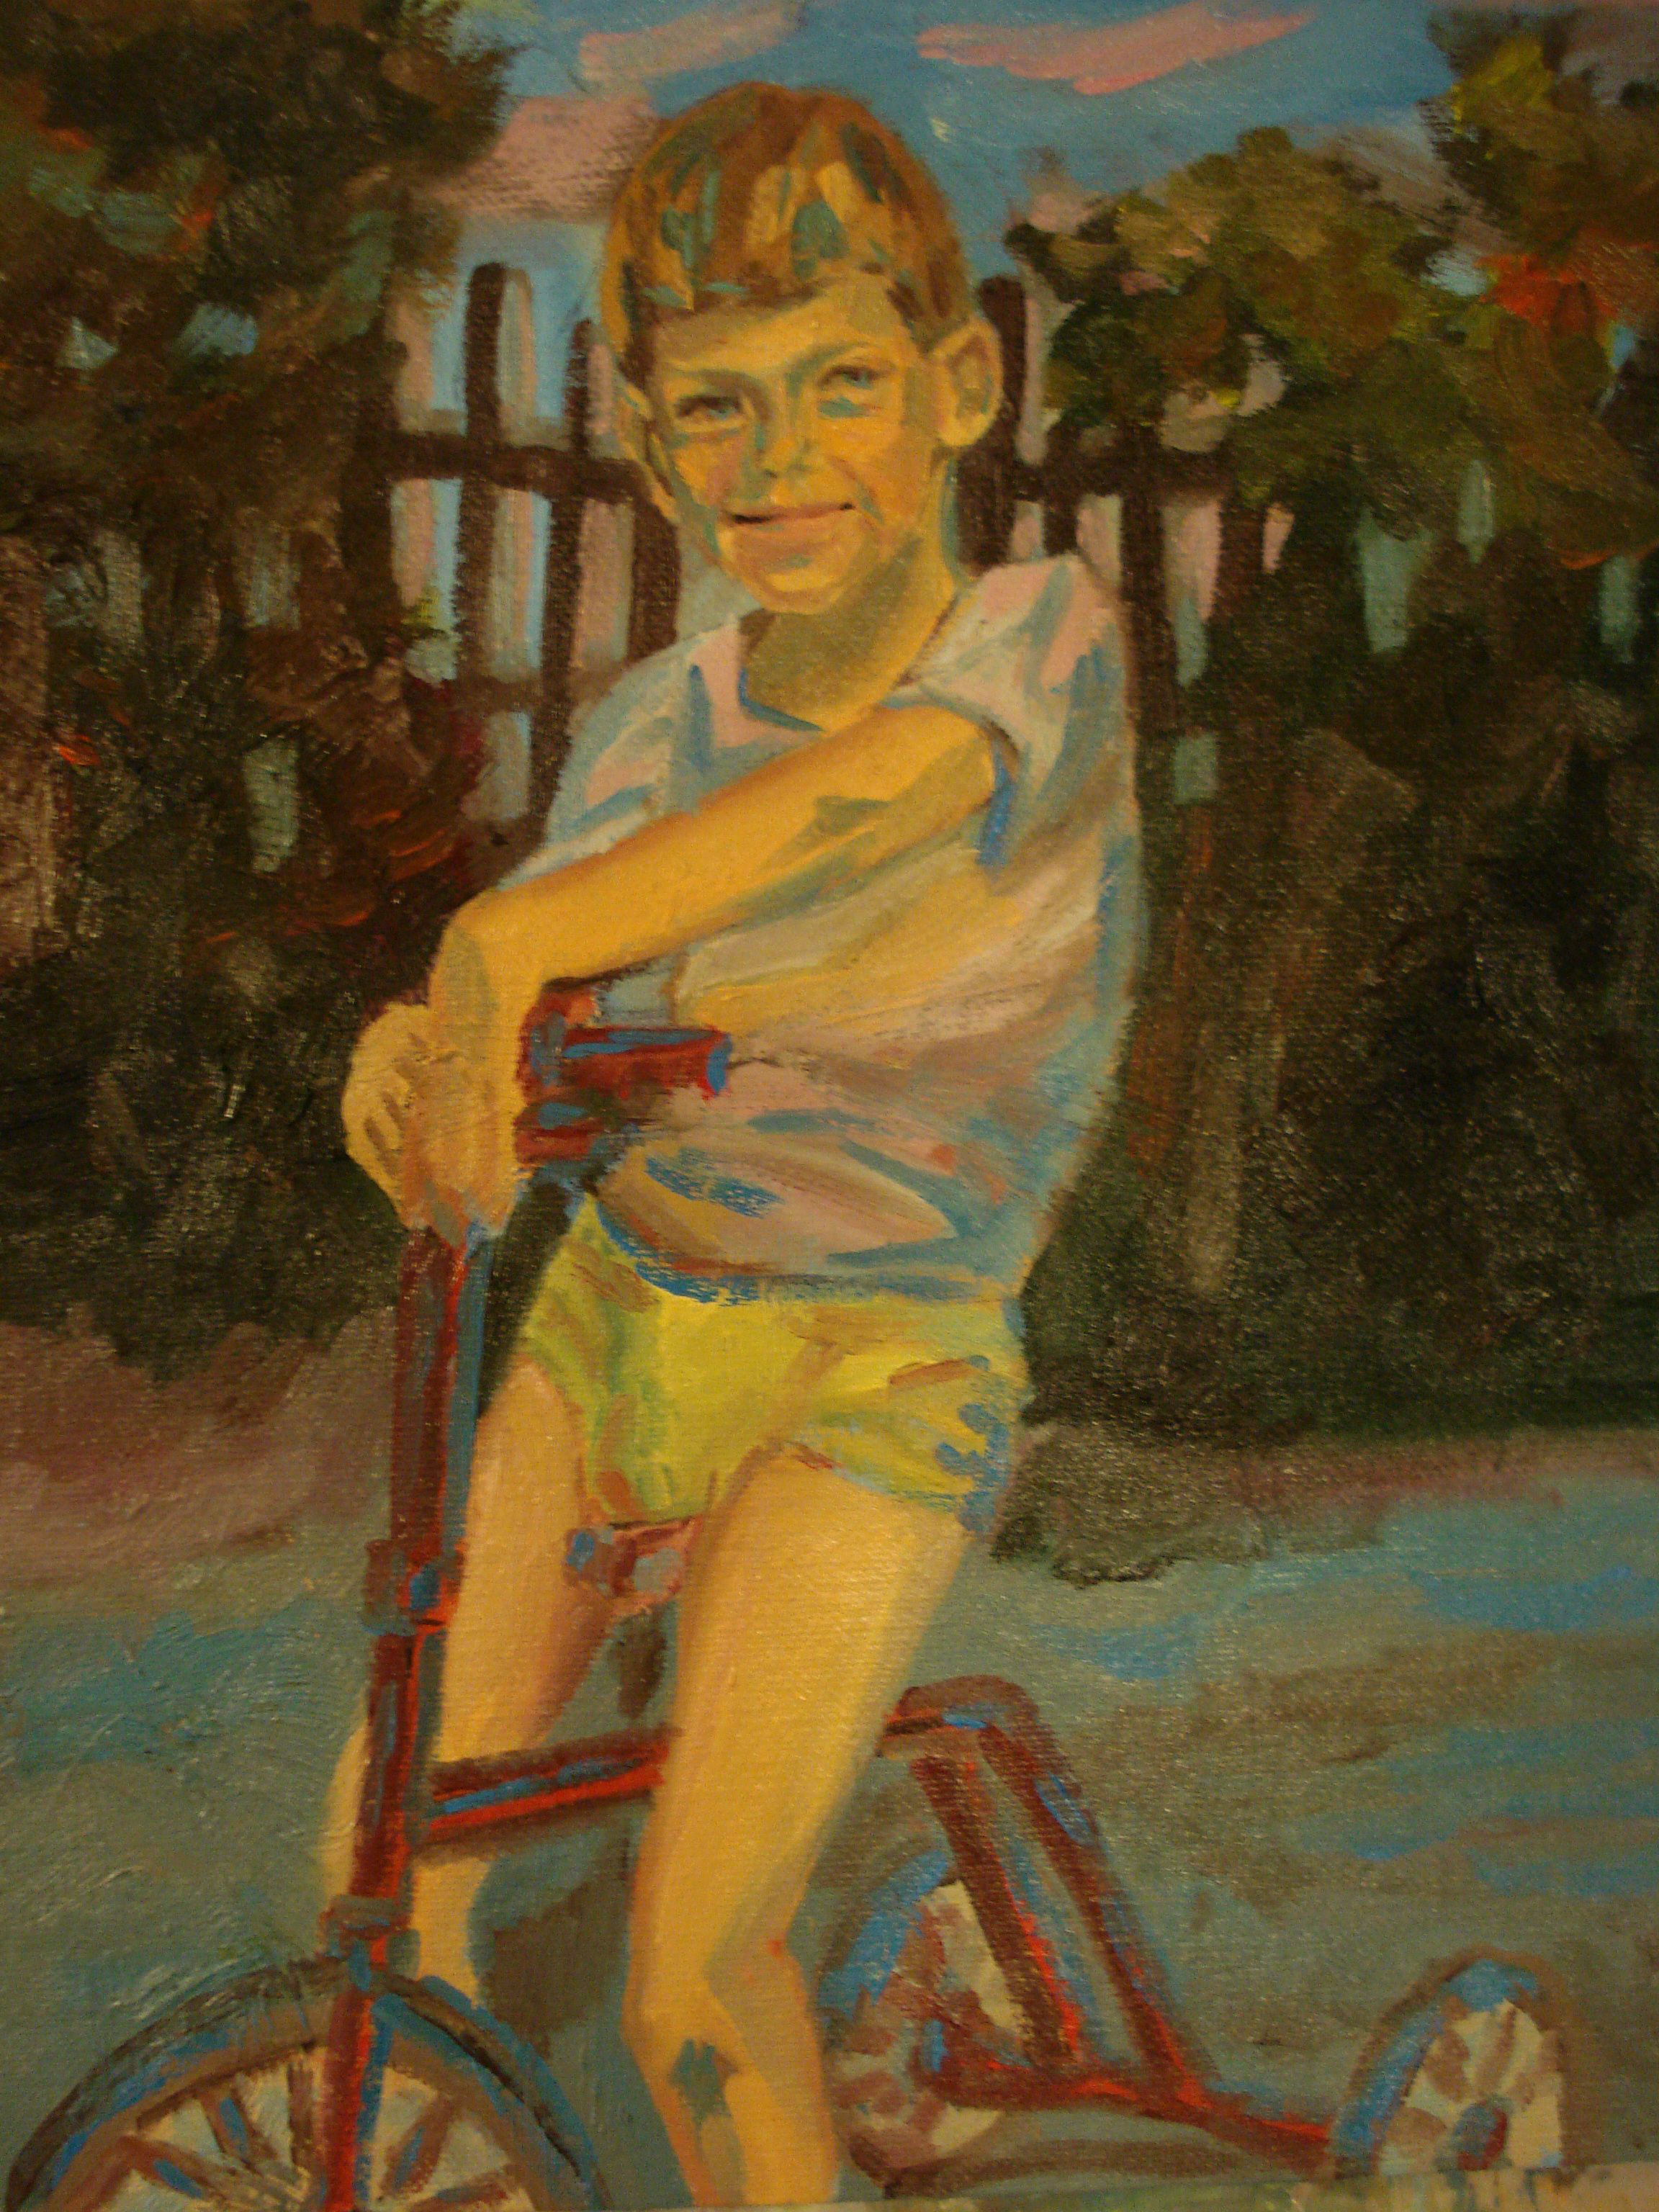 Boy and his tricycle